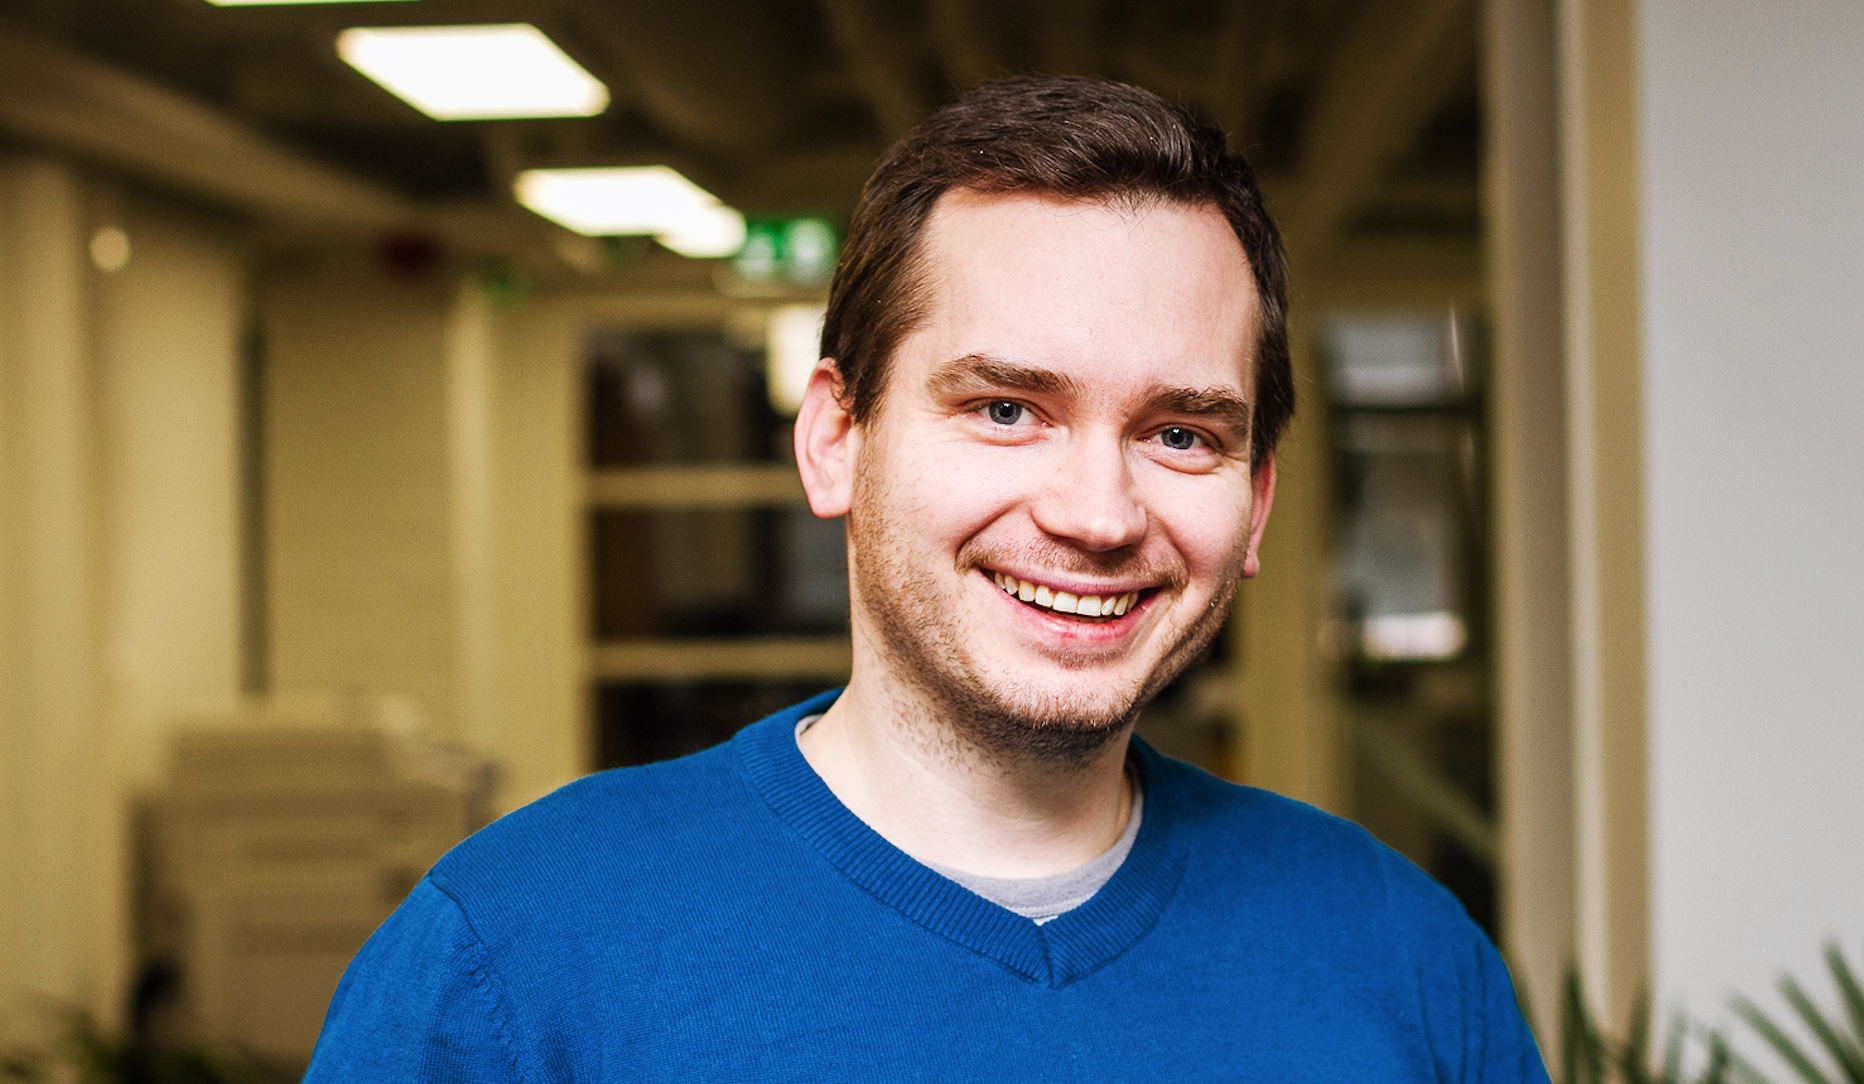 Midaxo Story: Michal gets excited about the whys and hows of software development